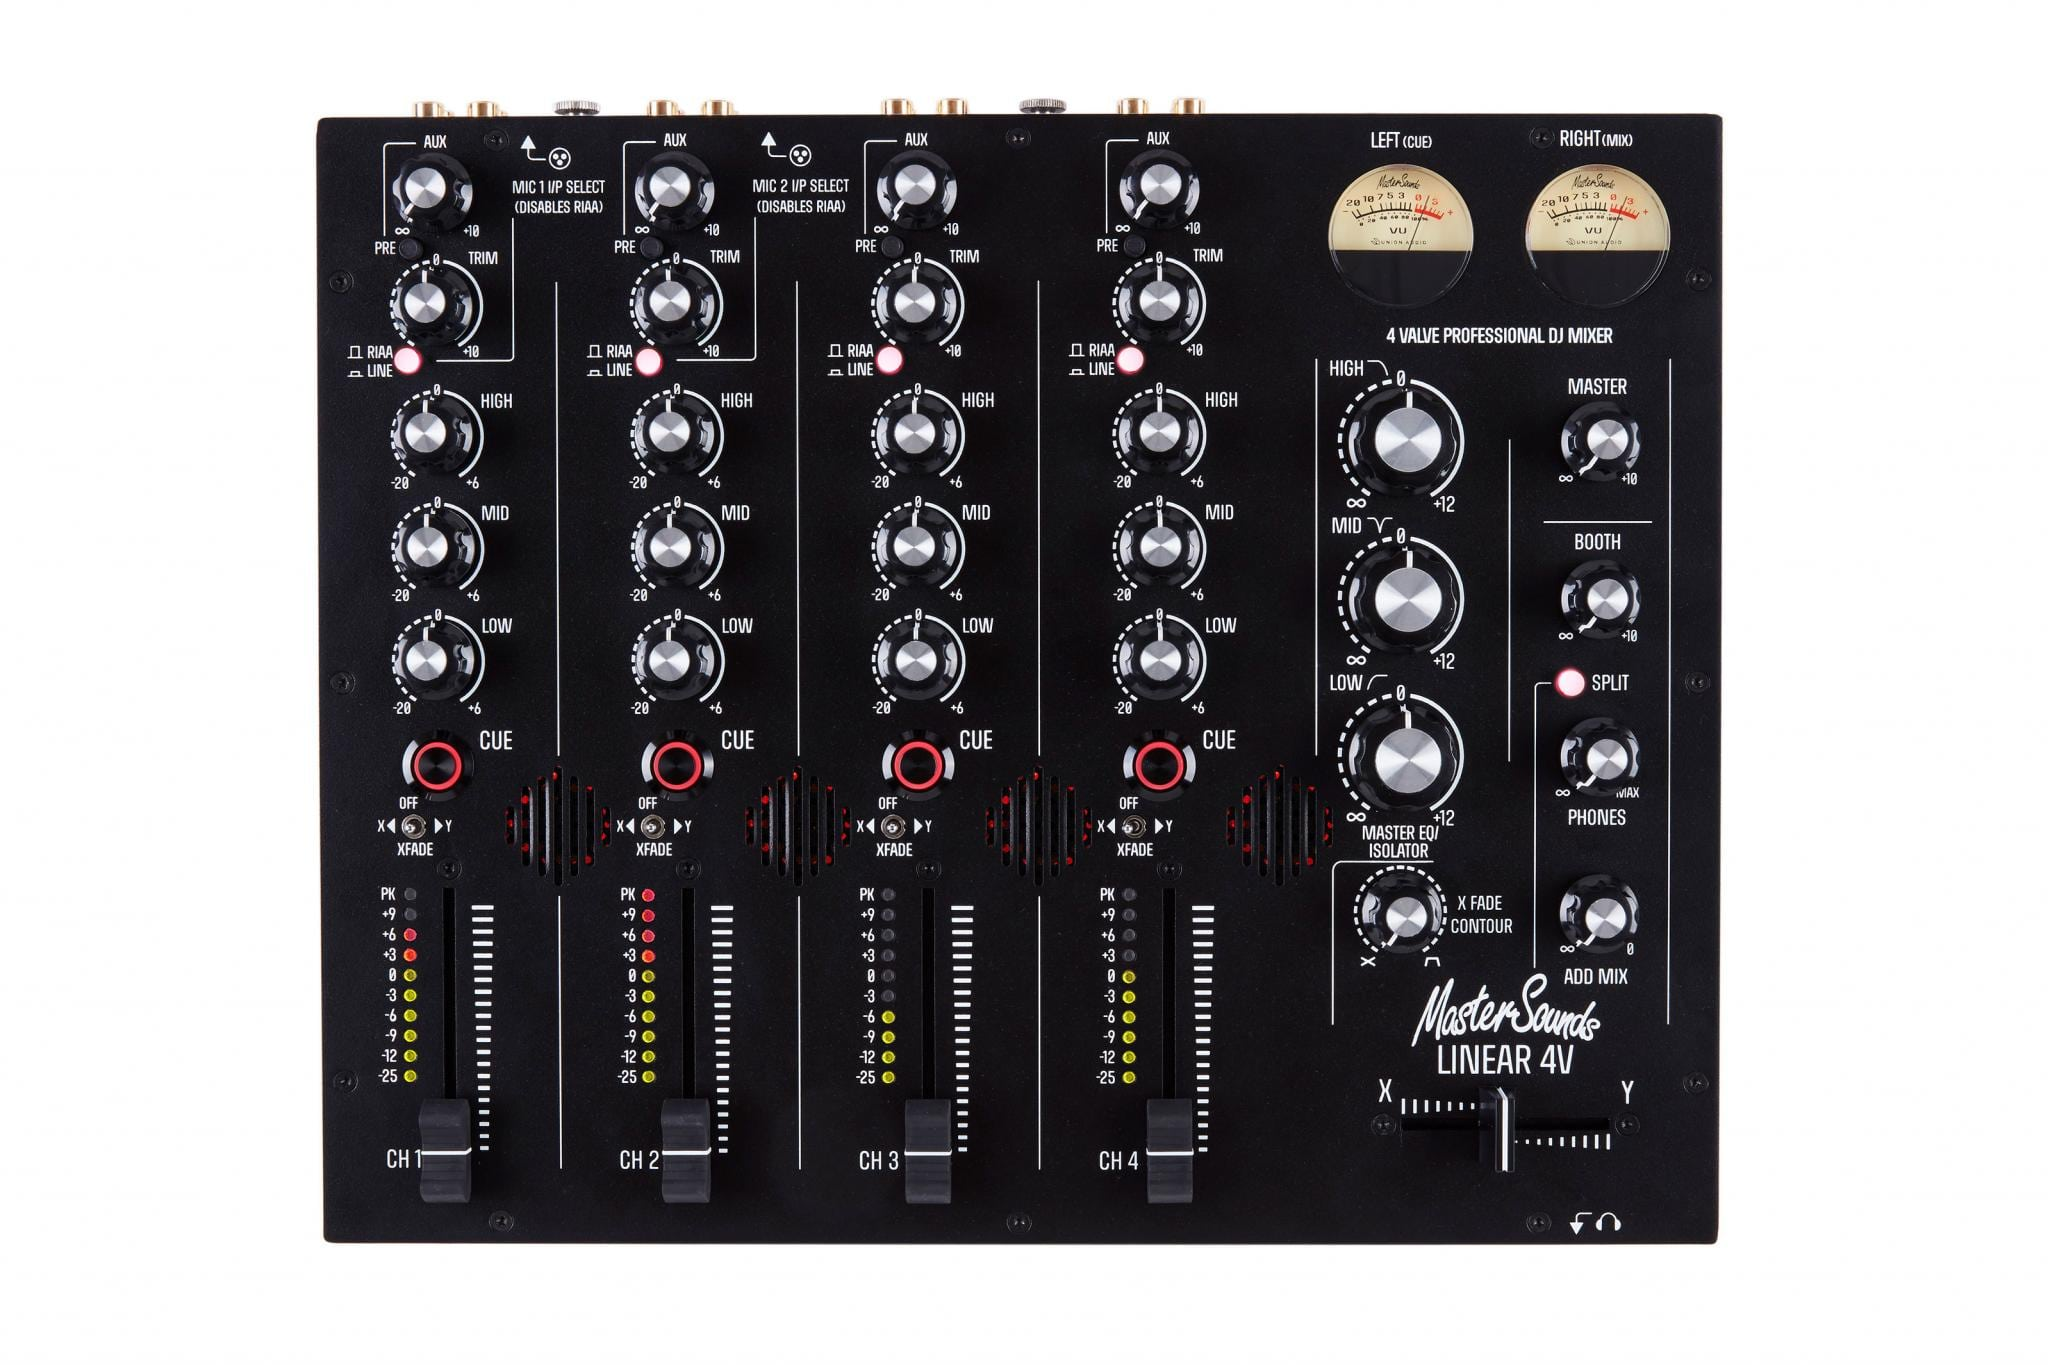 Mastersounds unleashes 4V mixers plus FX unit and more 3